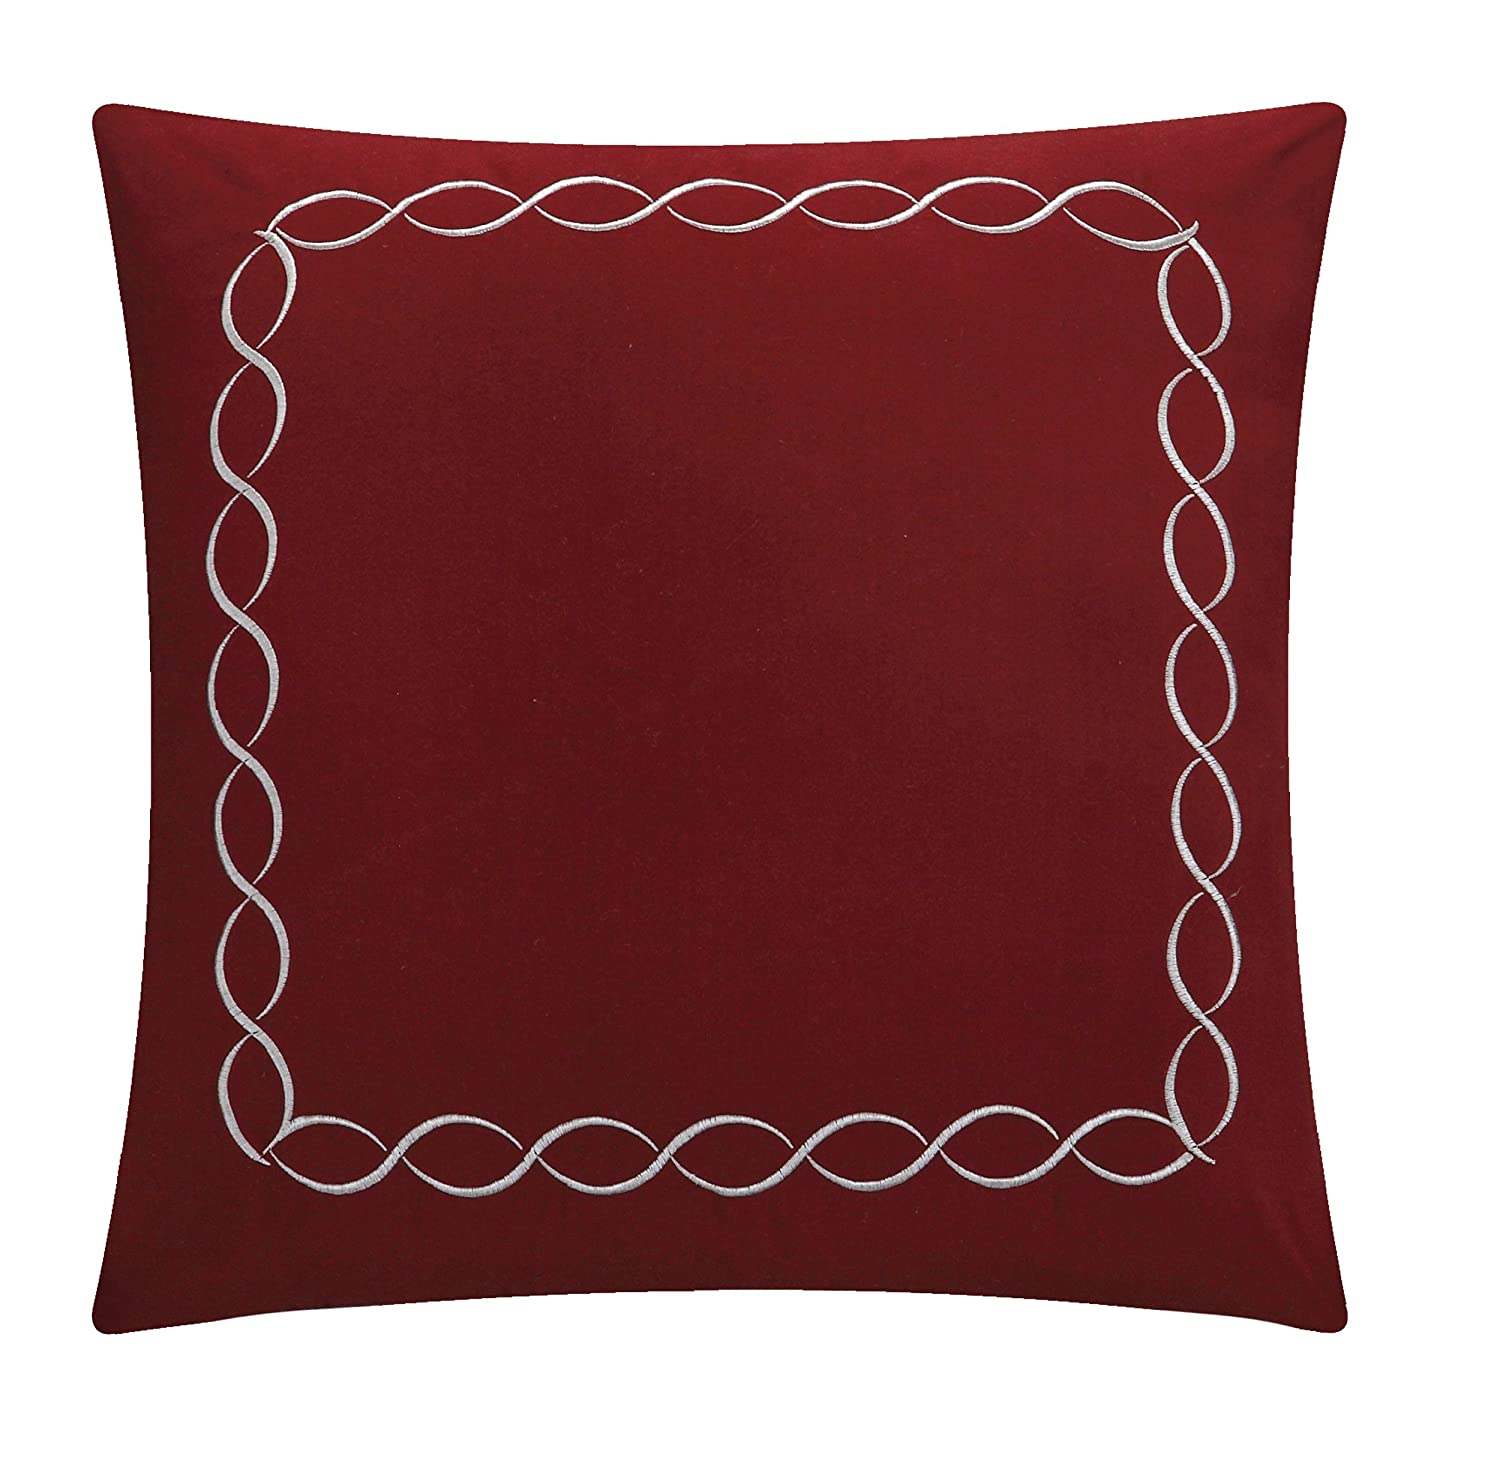 King Chic Home 4 Piece Barcelo Traditional Embroidery Quilt Set with Embroidered Decorative Pillow Plum